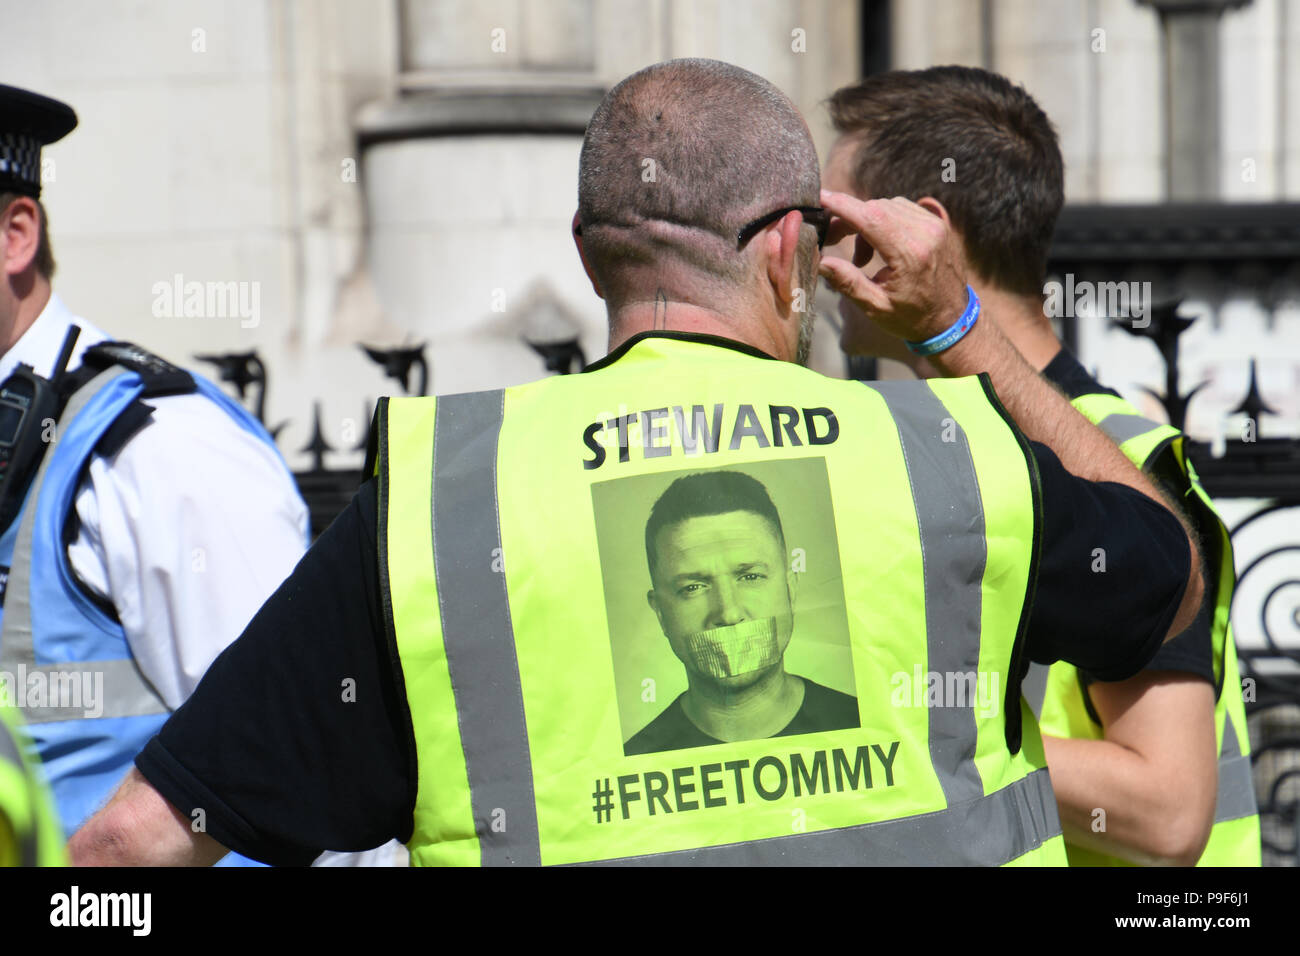 London, UK. 18th July 2018. Tommy Robinson is a formal far-rights EDL leader the supporter of Tommy outside the Royal Courts of Justice to #FreeTommy. Tommy has been send to jail for 13 months of breaking contempt of court laws at the Lord Justice Leveson hearing Tommy's appeal on 18th July 2018 in London, UK. Credit: Picture Capital/Alamy Live News - Stock Image